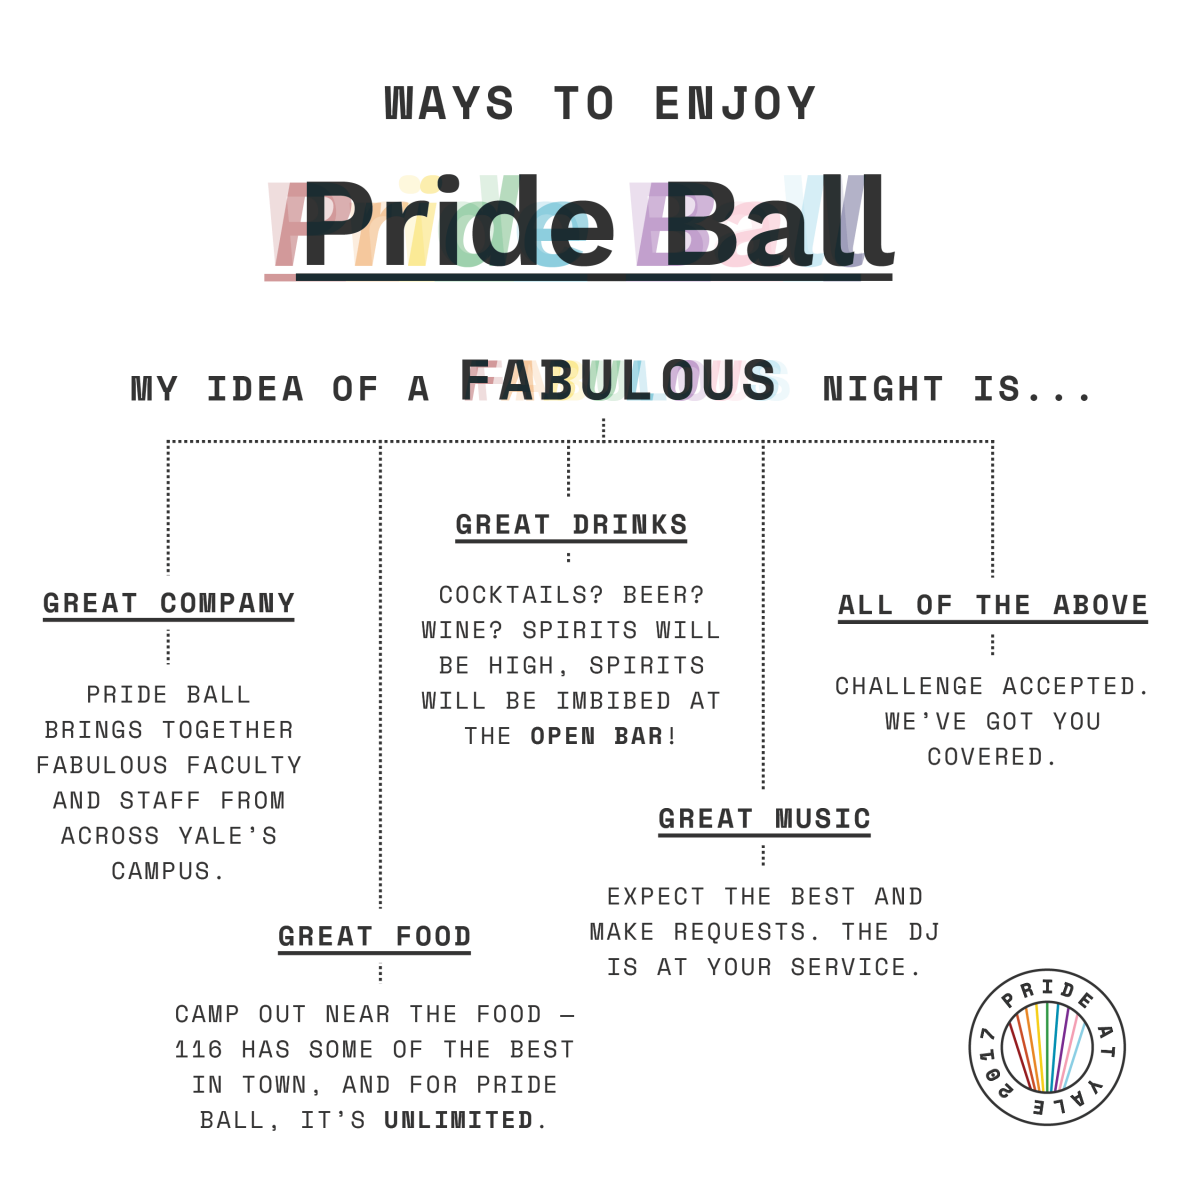 Ways to enjoy Pride Ball